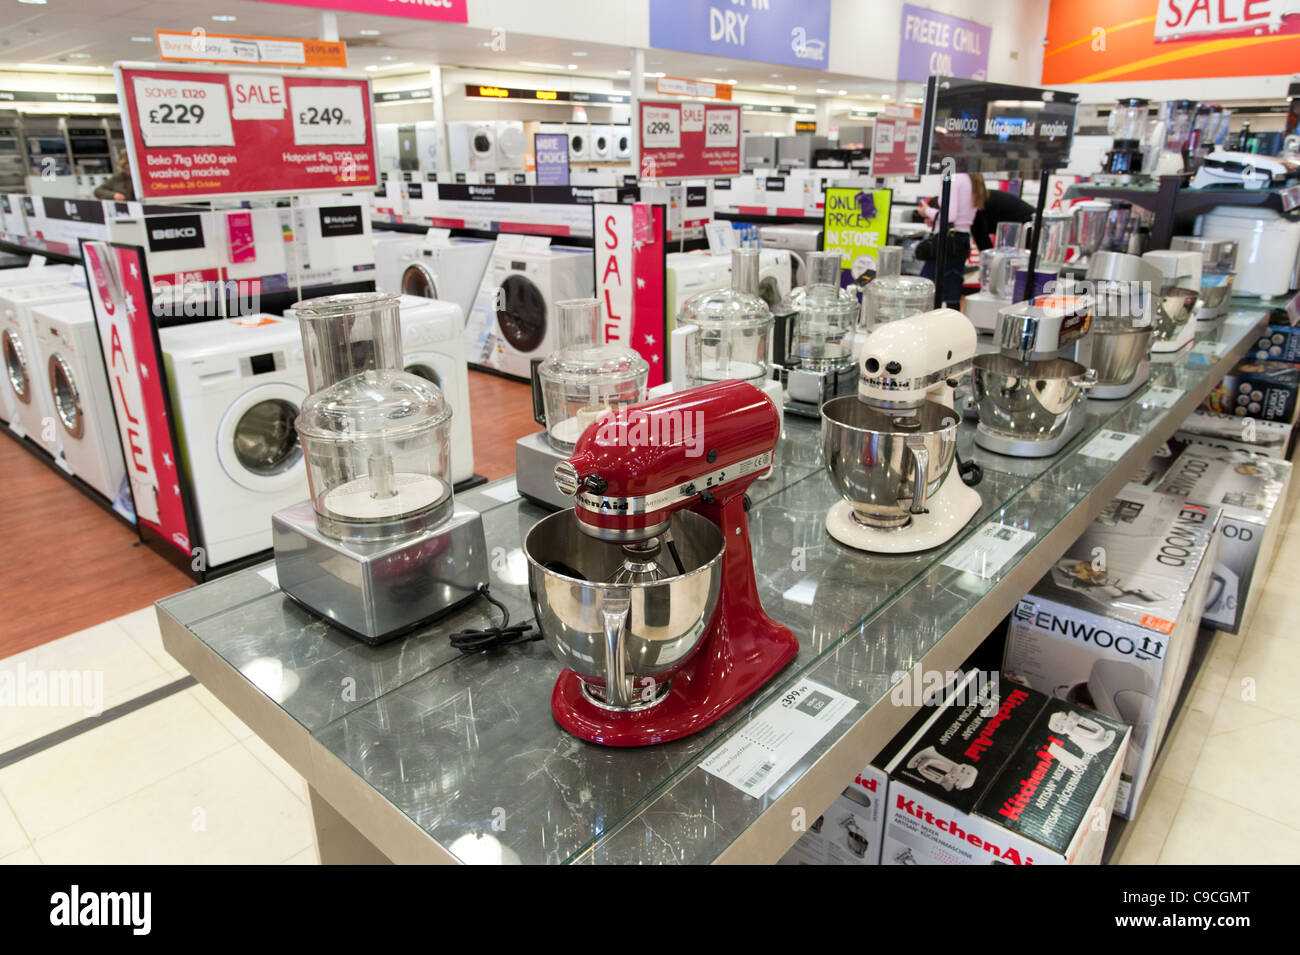 Electrical Kitchen Appliances In Comet Store, London